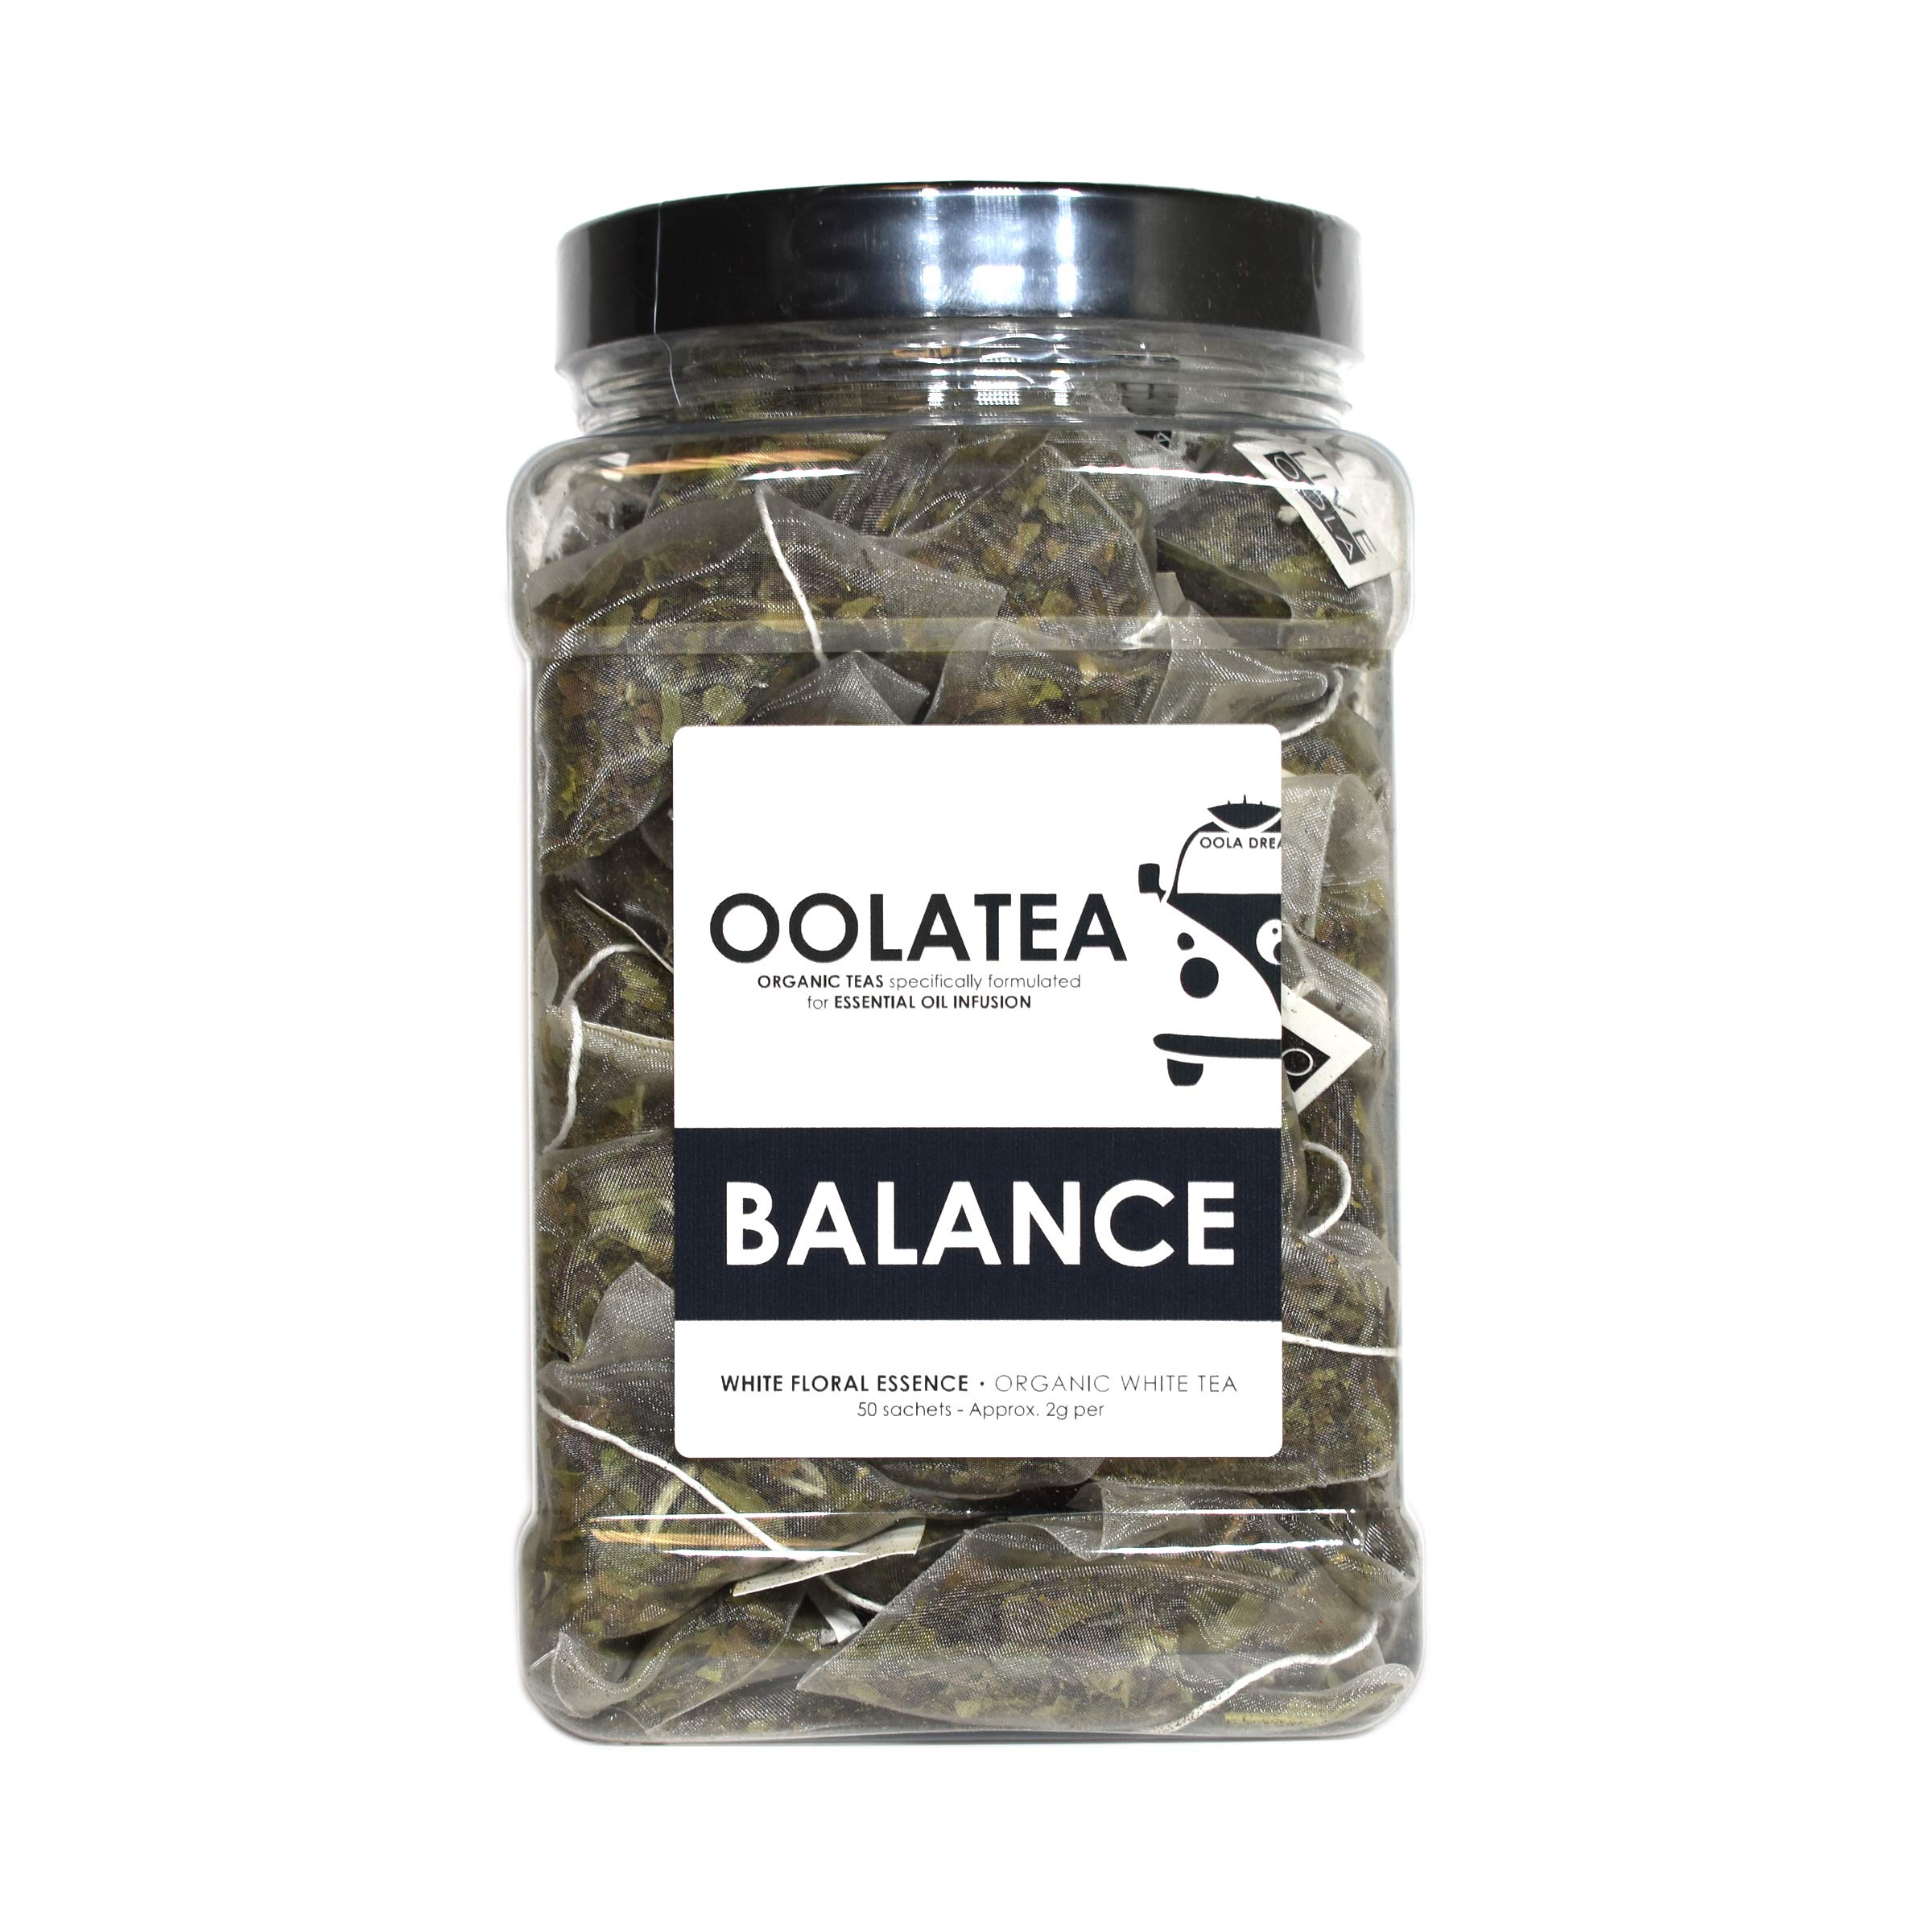 Oola Tea - BALANCE (White Floral Essence 50 Count | Certified Organic White Tea | Promotes Relaxation | Reduces Oxidative Stress by OolaTea